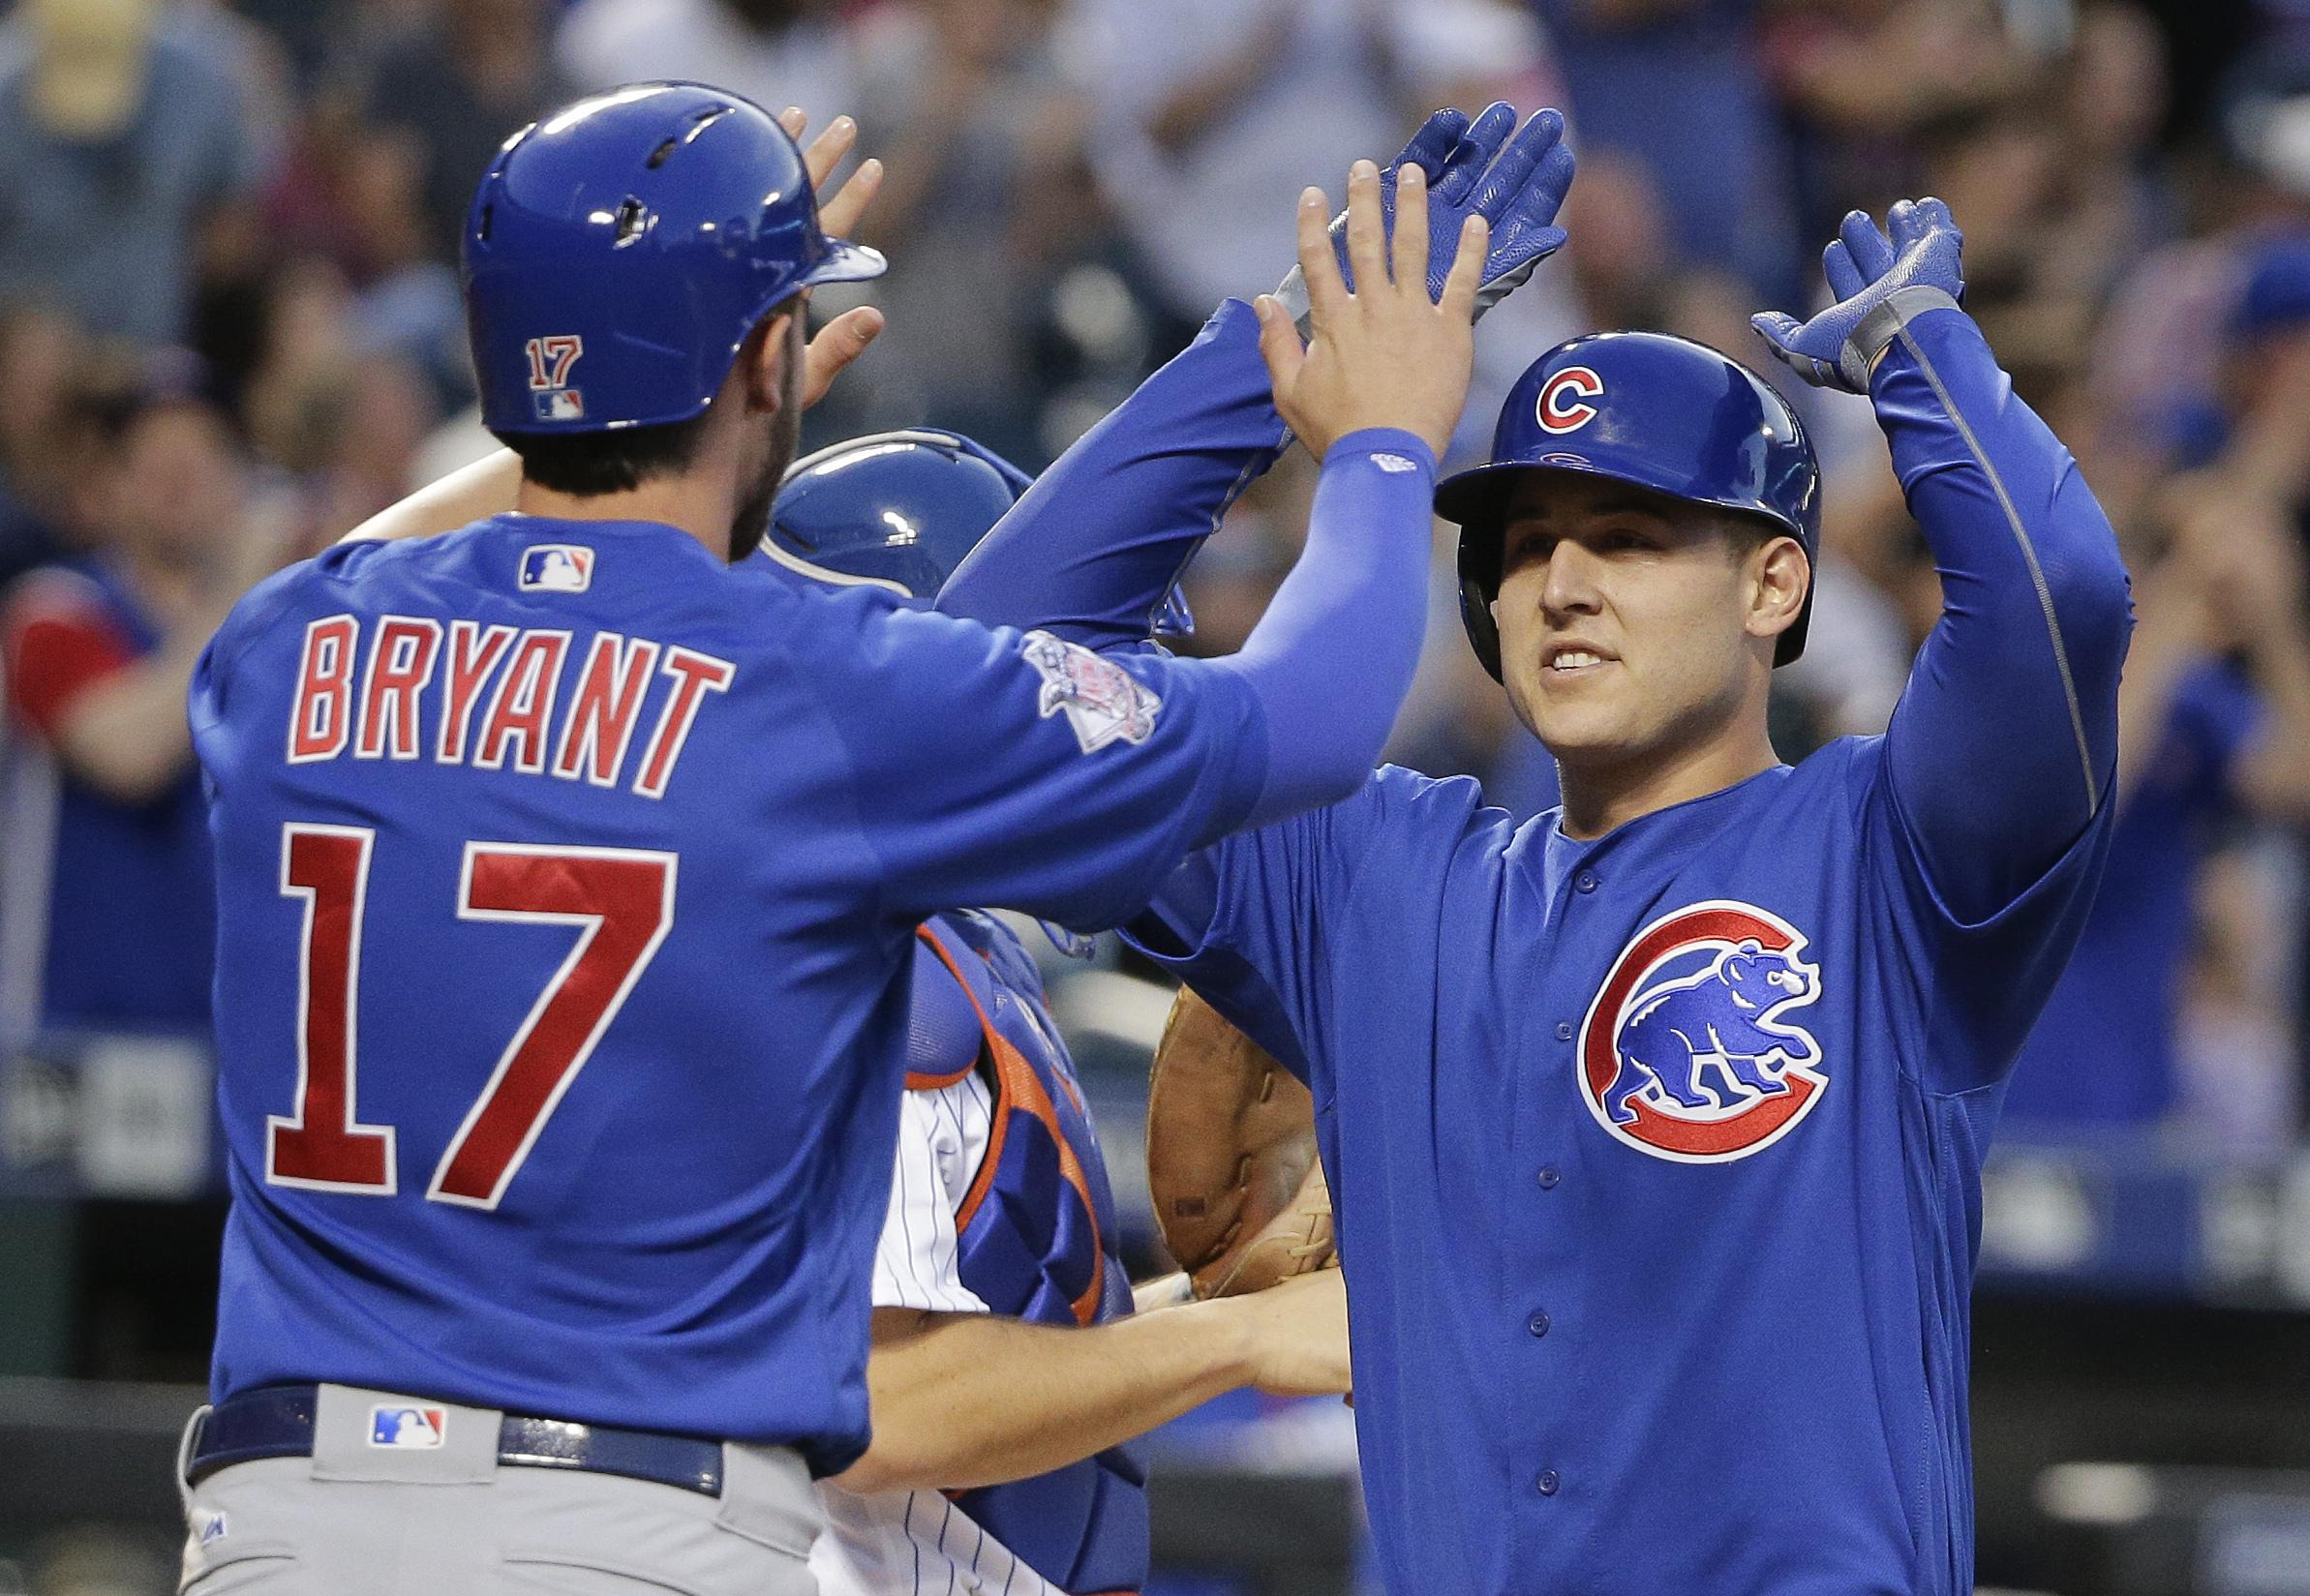 Five Cubs Elected To Start In MLB All Star Game The Spokesman Review